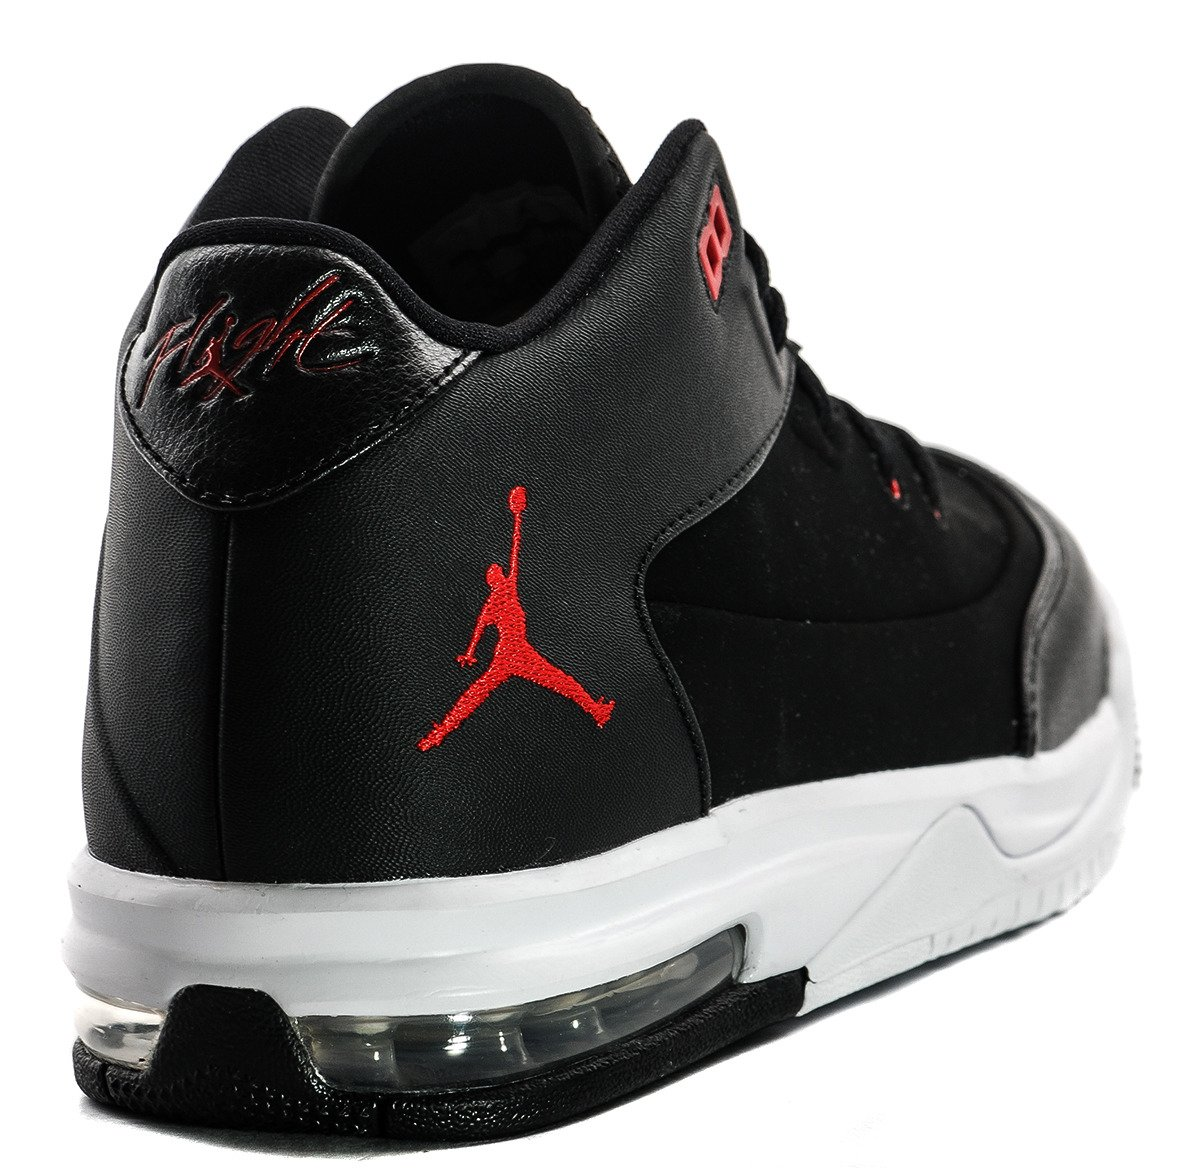 jordan flight origin 3 homme